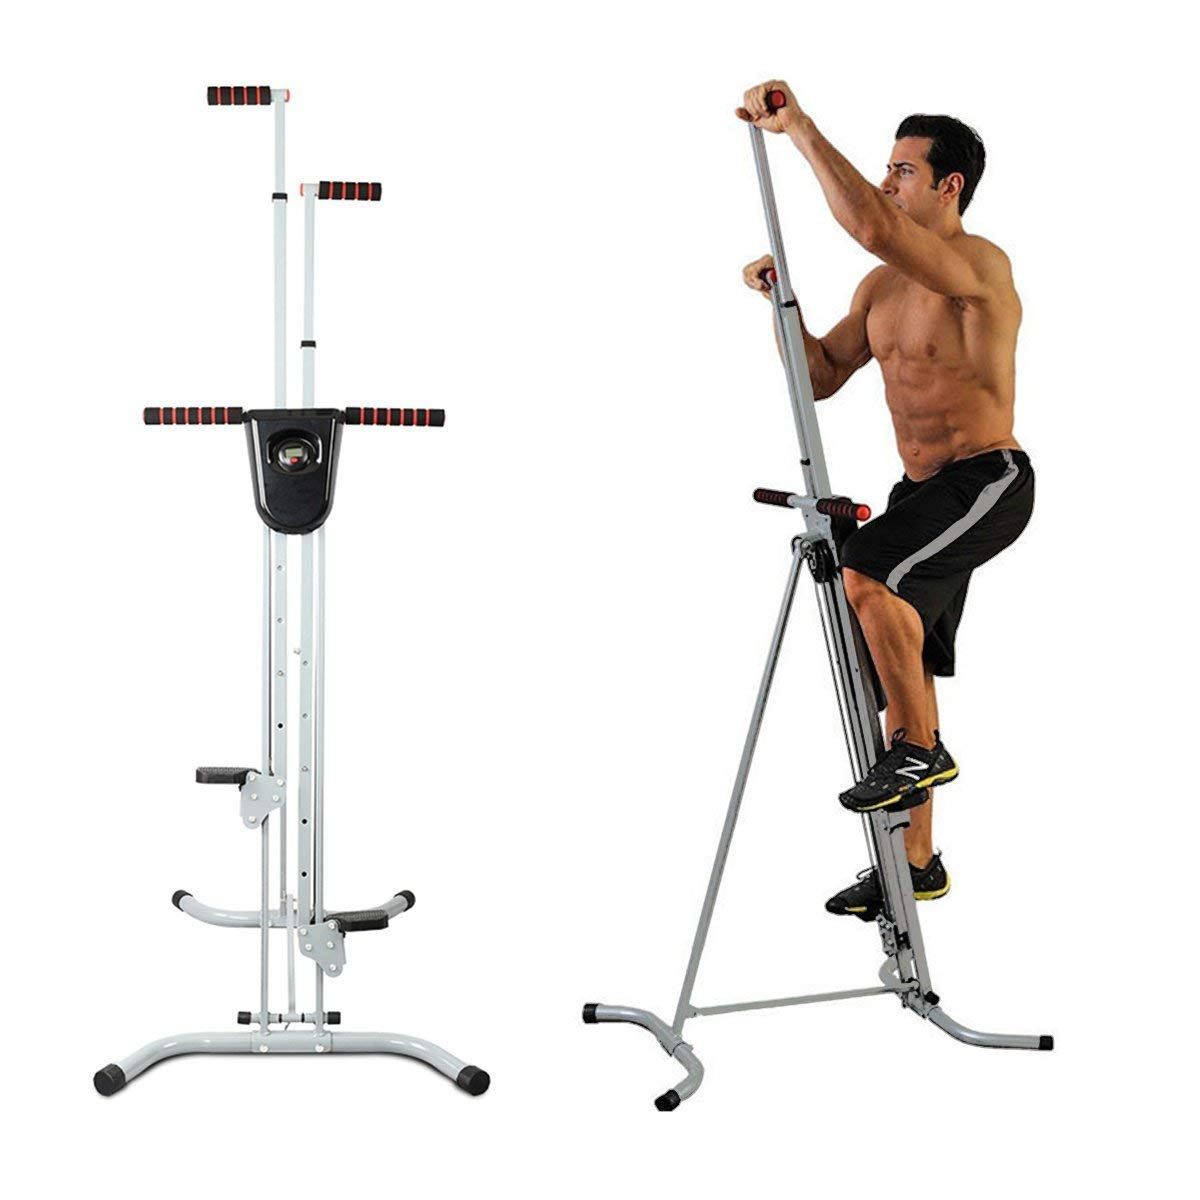 Apelila Vertical Climber, Climbing Machine - Total Body Workout Fitness Folding Cardio Climber Exercise Machine,with LCD Monitor for Home Gym Fitness by Apelila